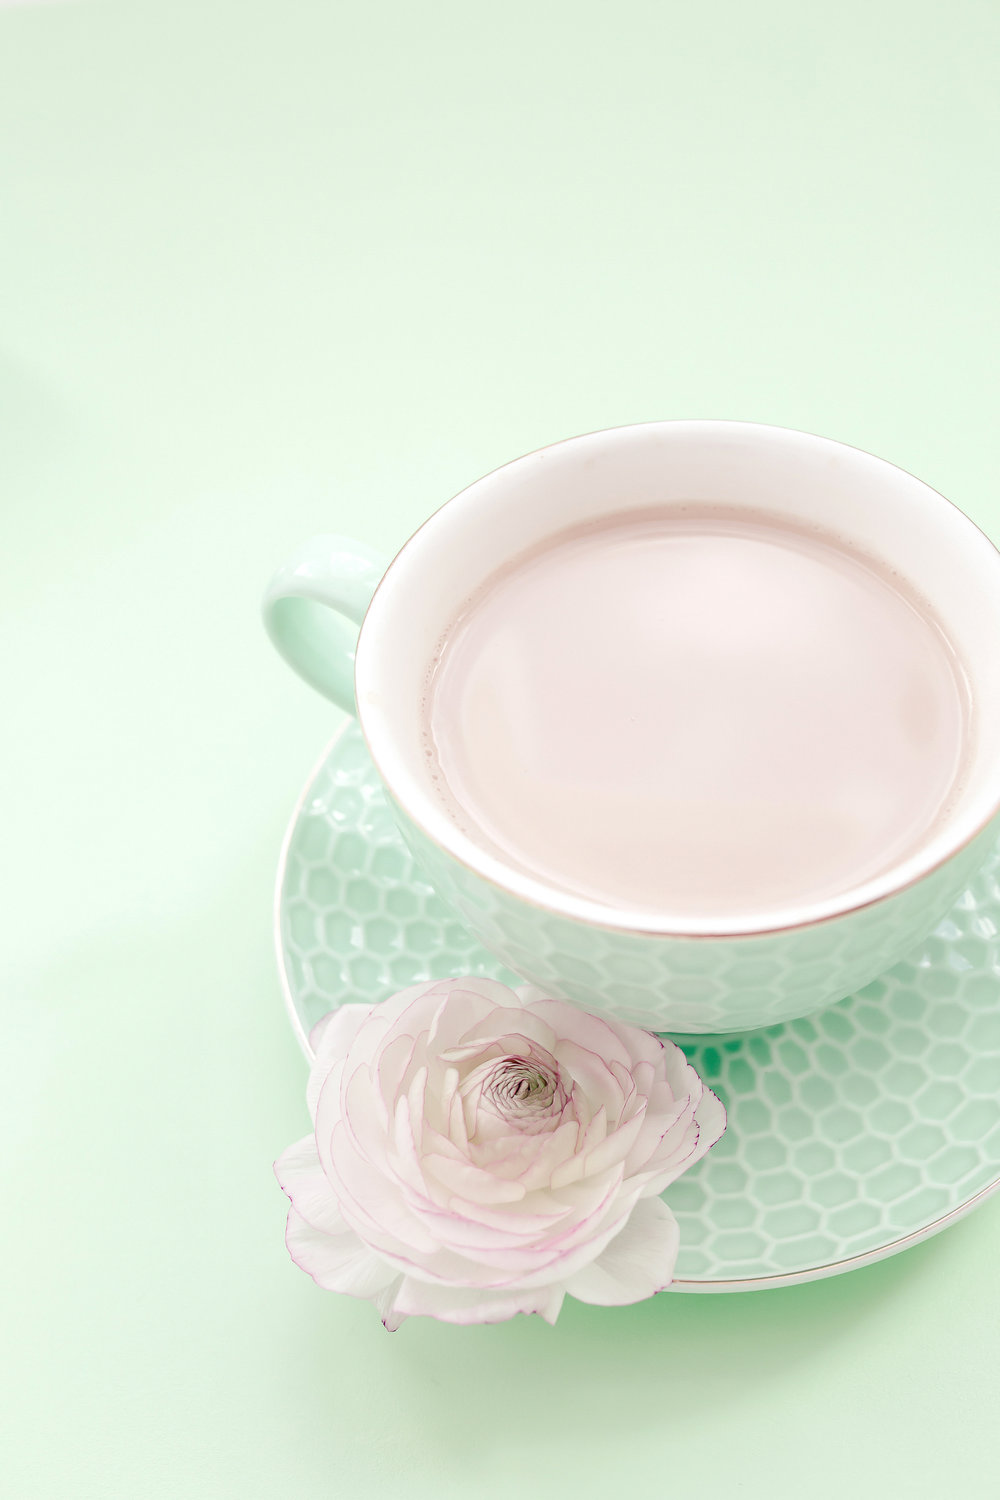 haute-stock-photography-pink-mint-backgrounds-final-12.jpg